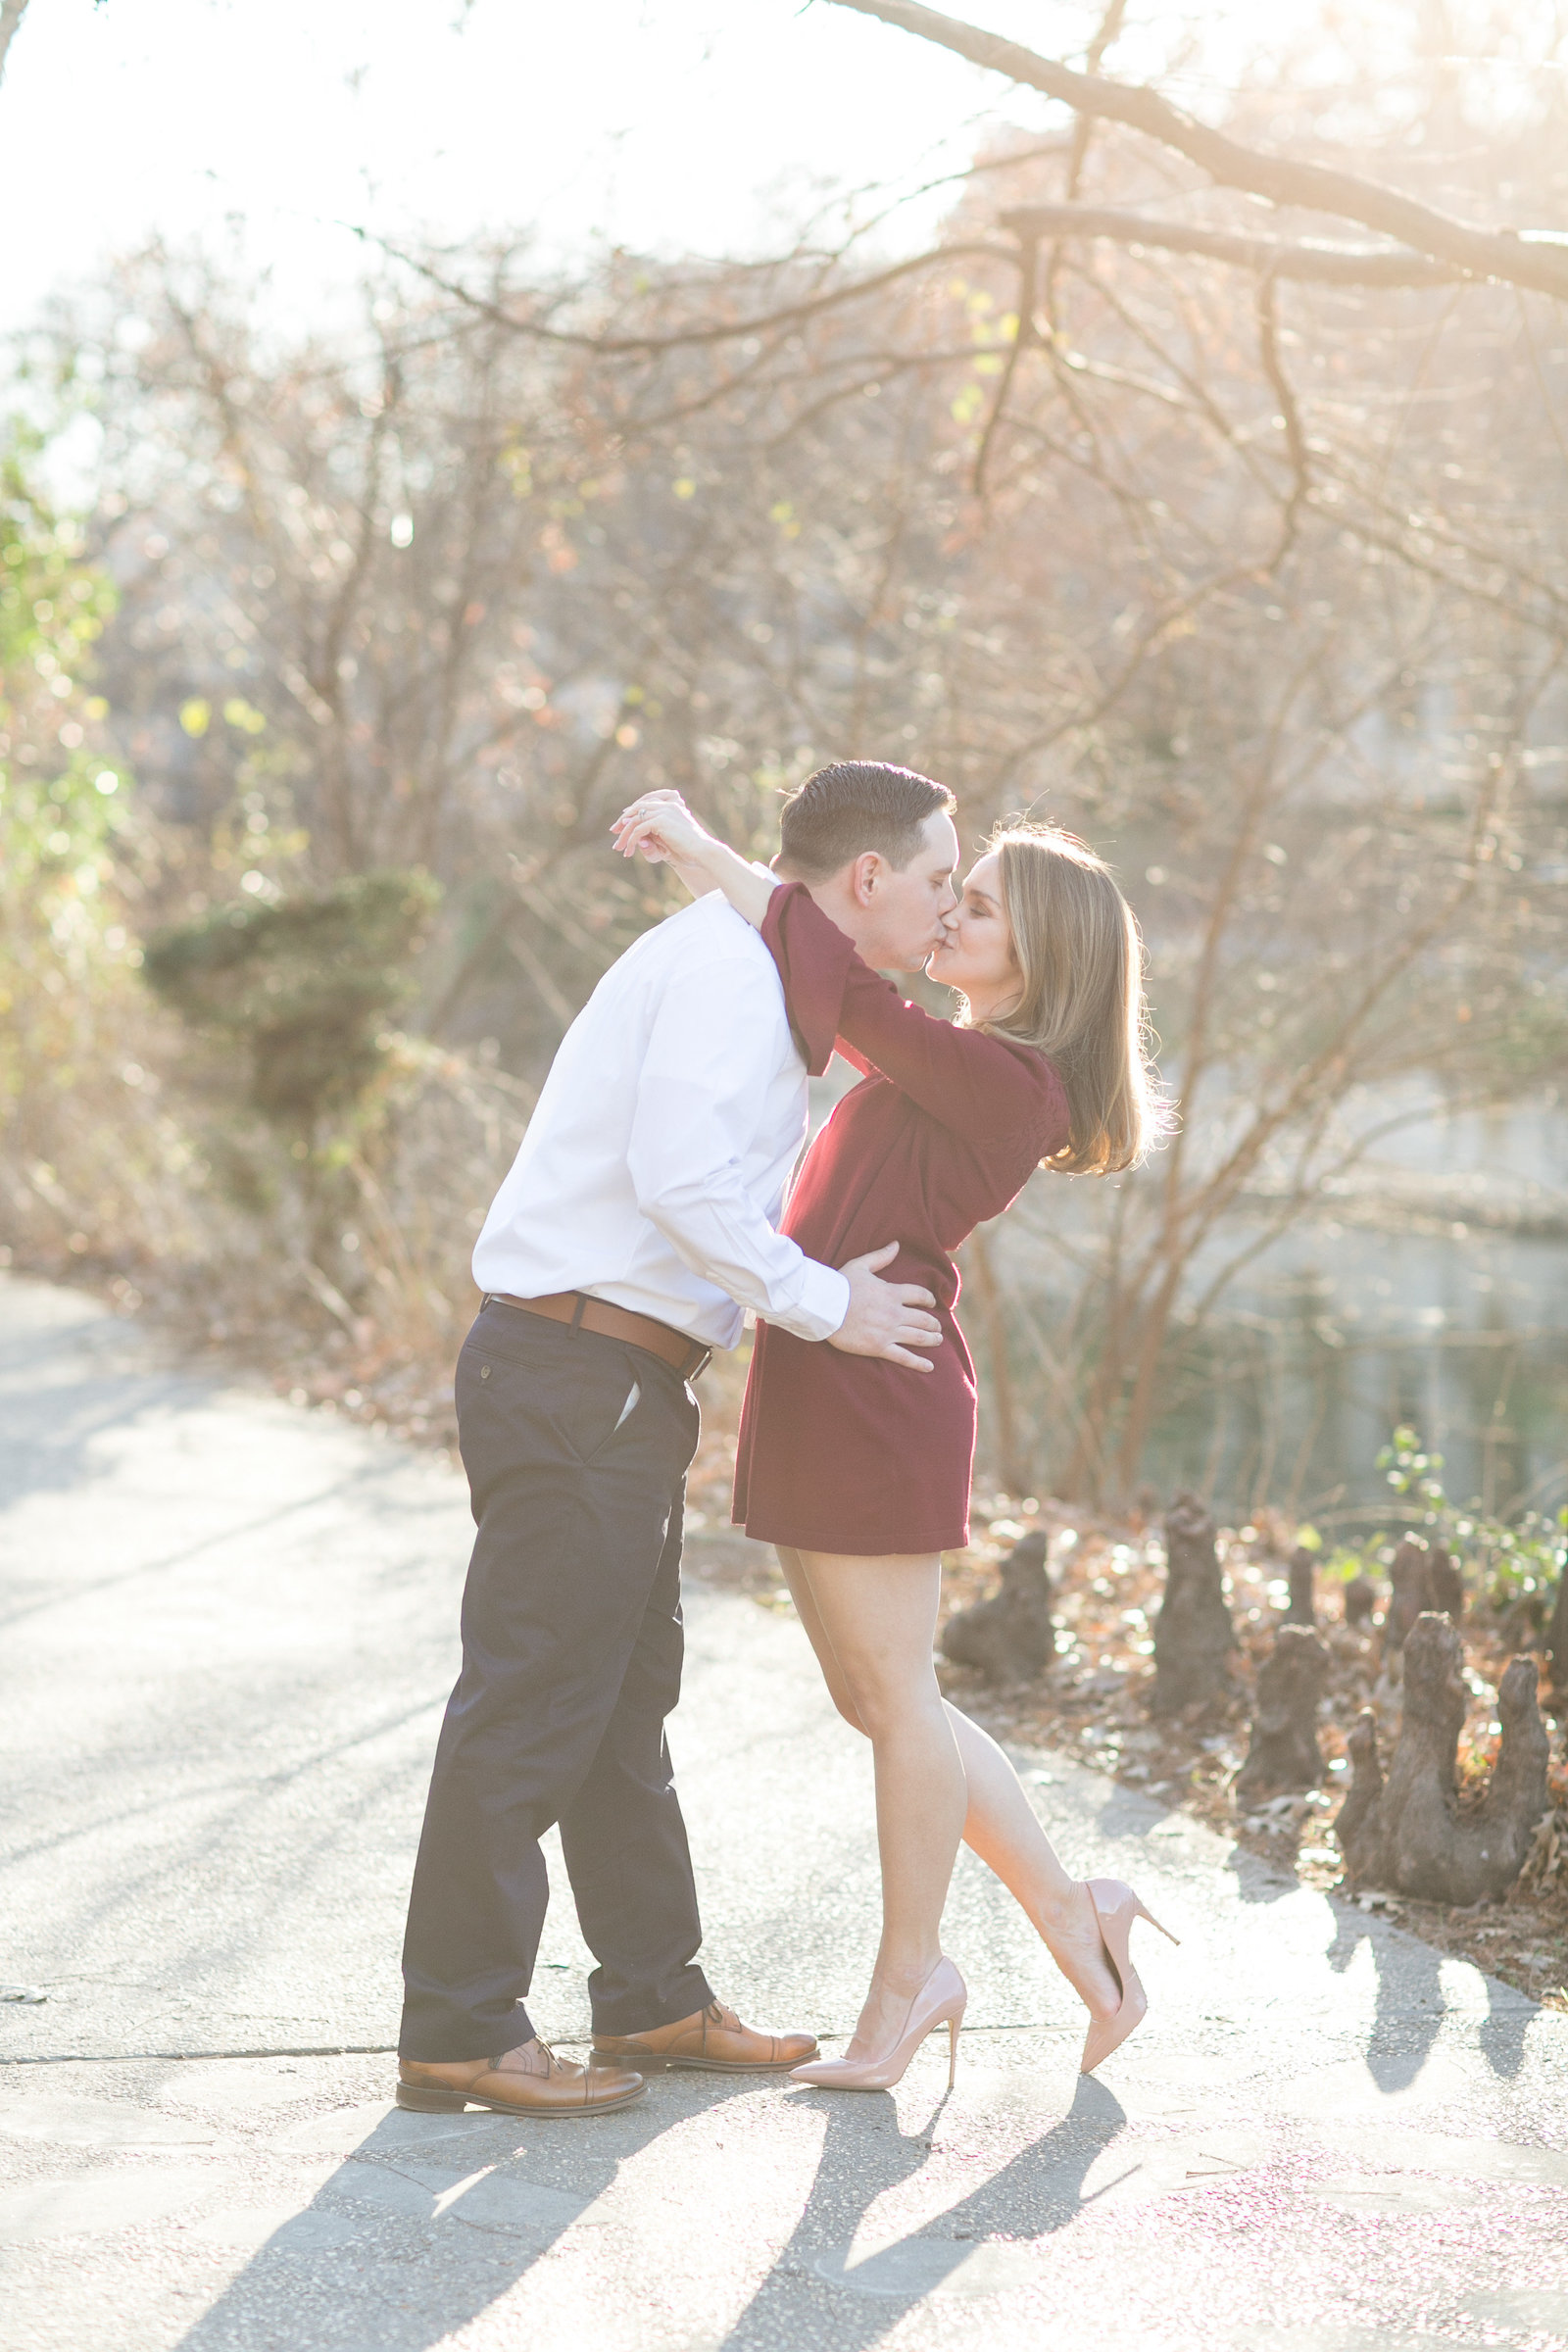 king-william-district-san-antonio-texas-river-walk-engagement-session-photo-75